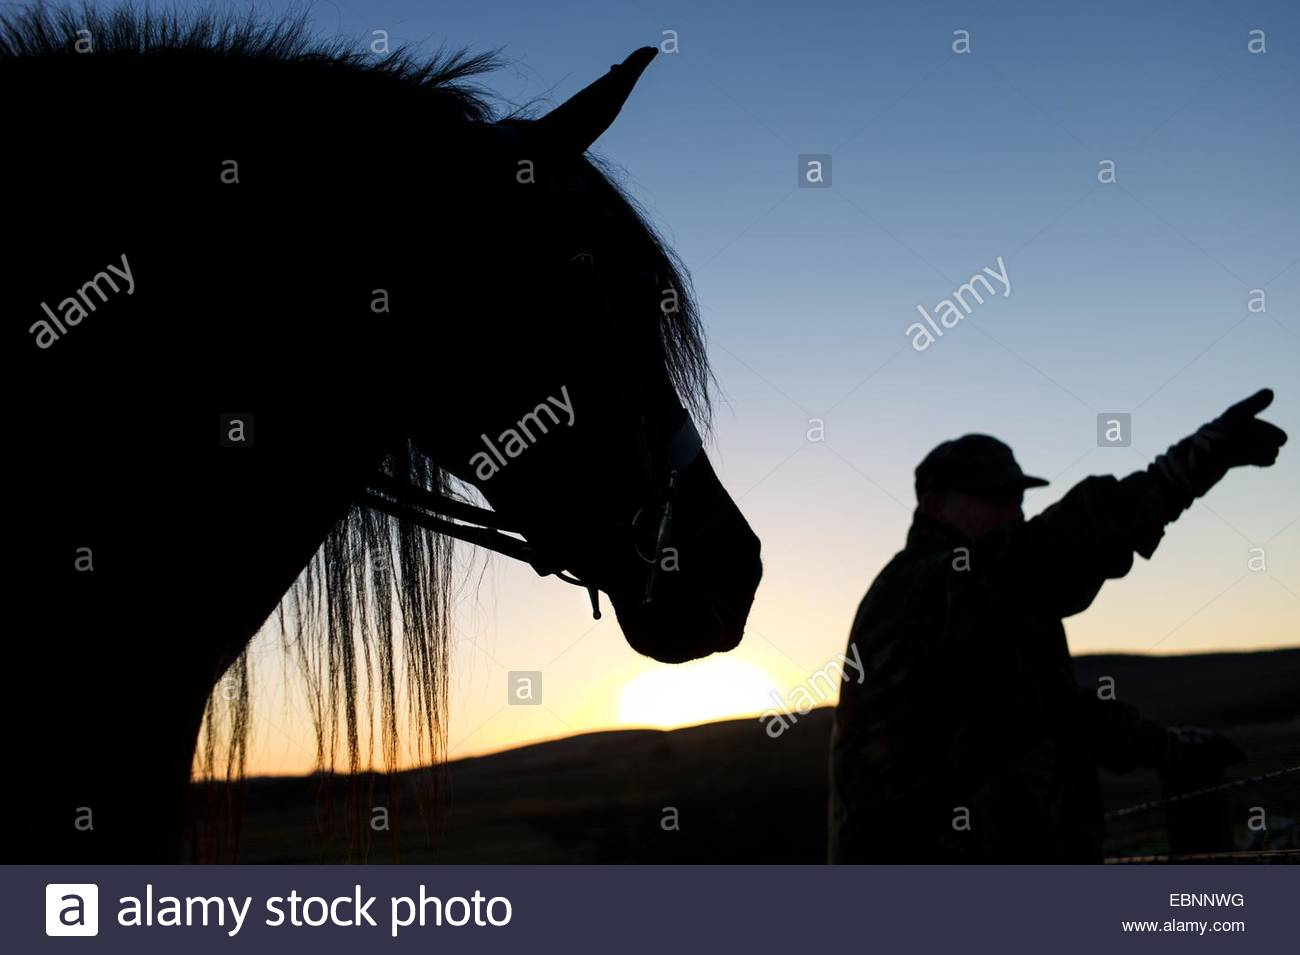 A shepherd out hunting points in the direction of the action while stood next to a fell pony at dusk. - Stock Image